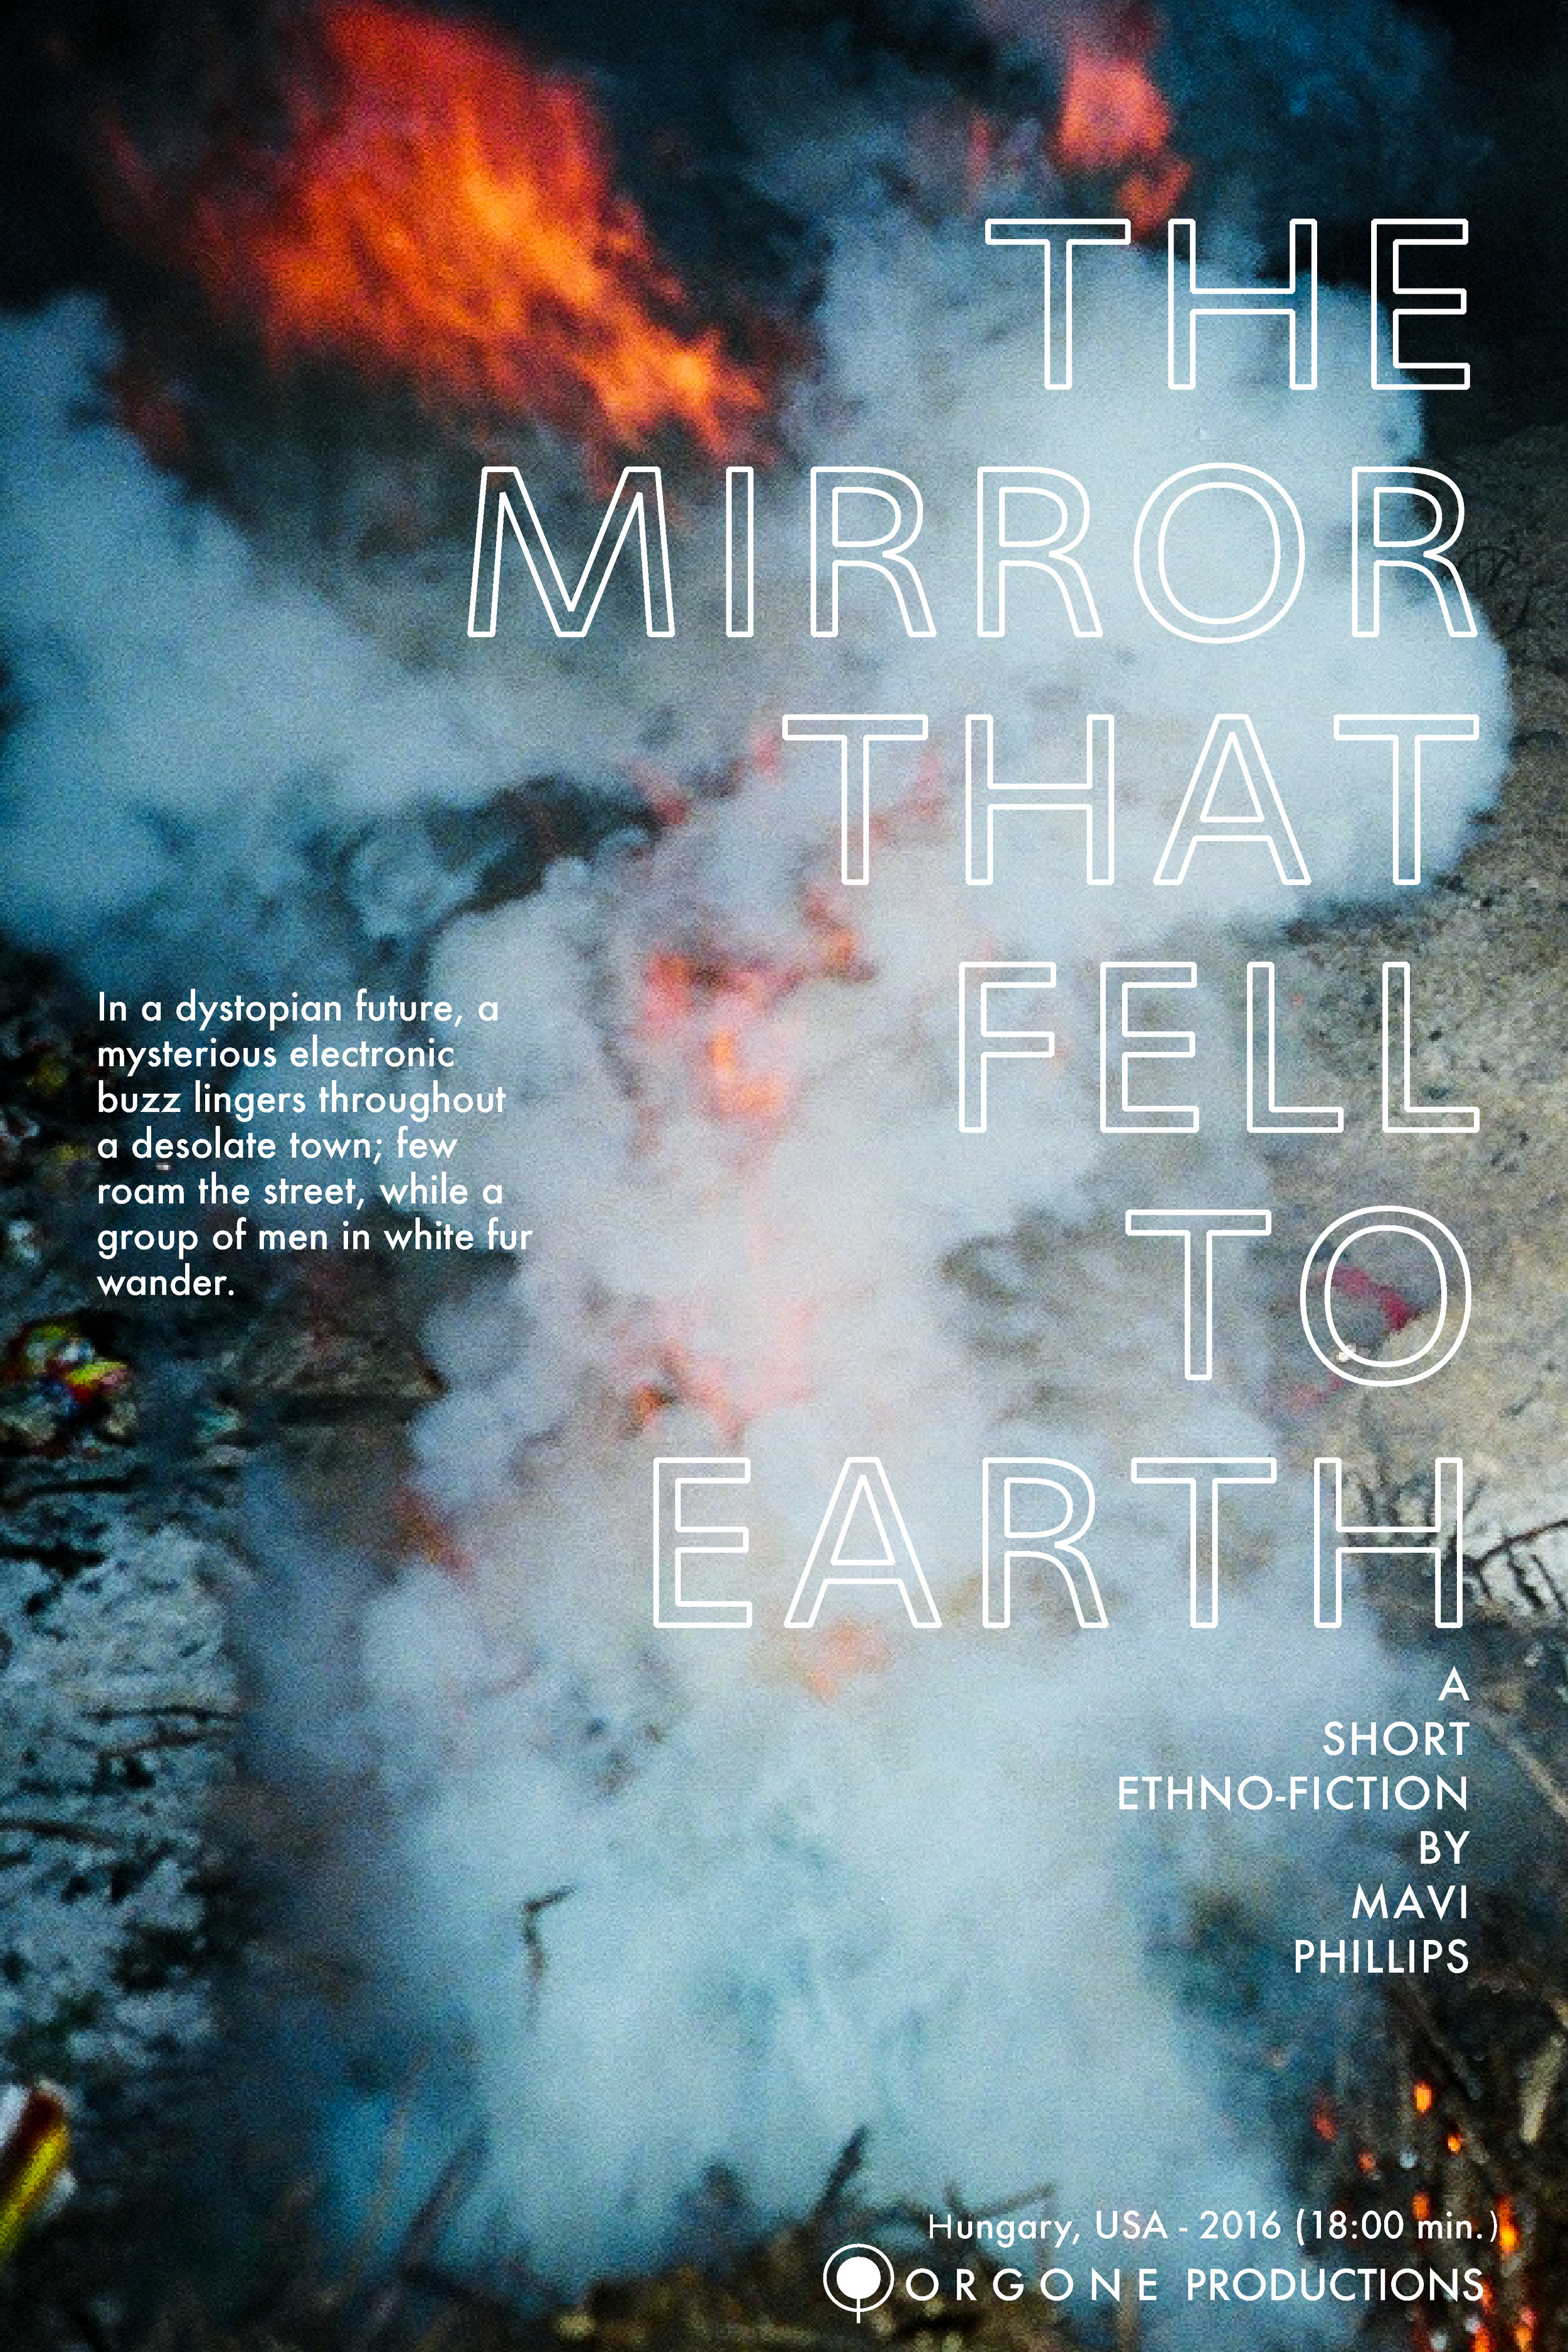 ETHNO-FICTION : Combining fiction + nonfiction, 'The Mirror That Fell To Earth' turns the Busojaras Festival into a dystopian end of the world.